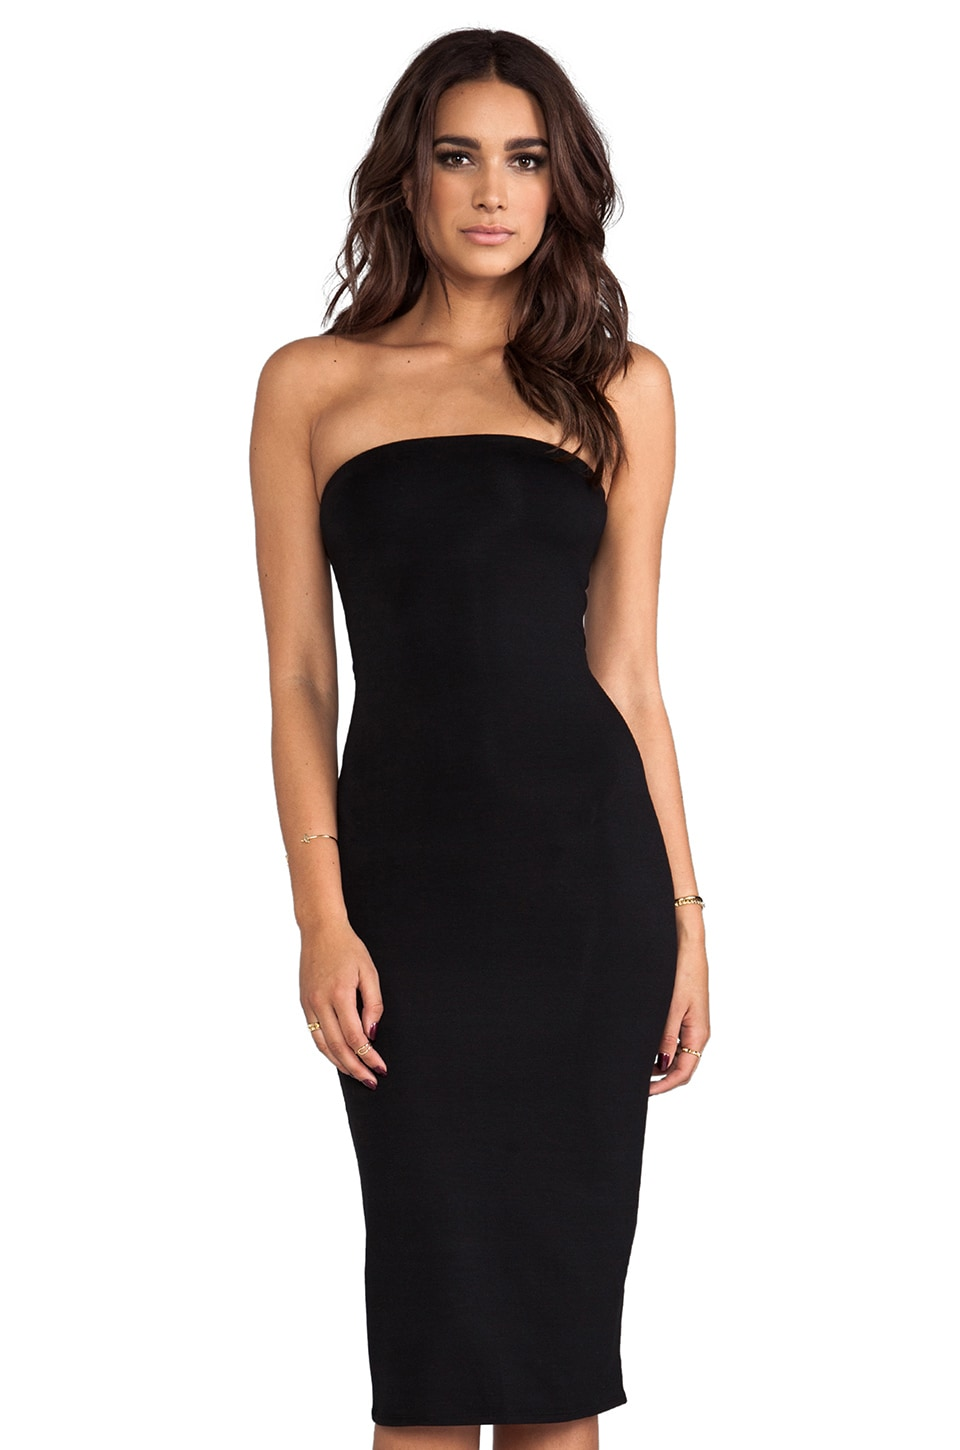 Rachel Pally Kris Strapless Dress in Black